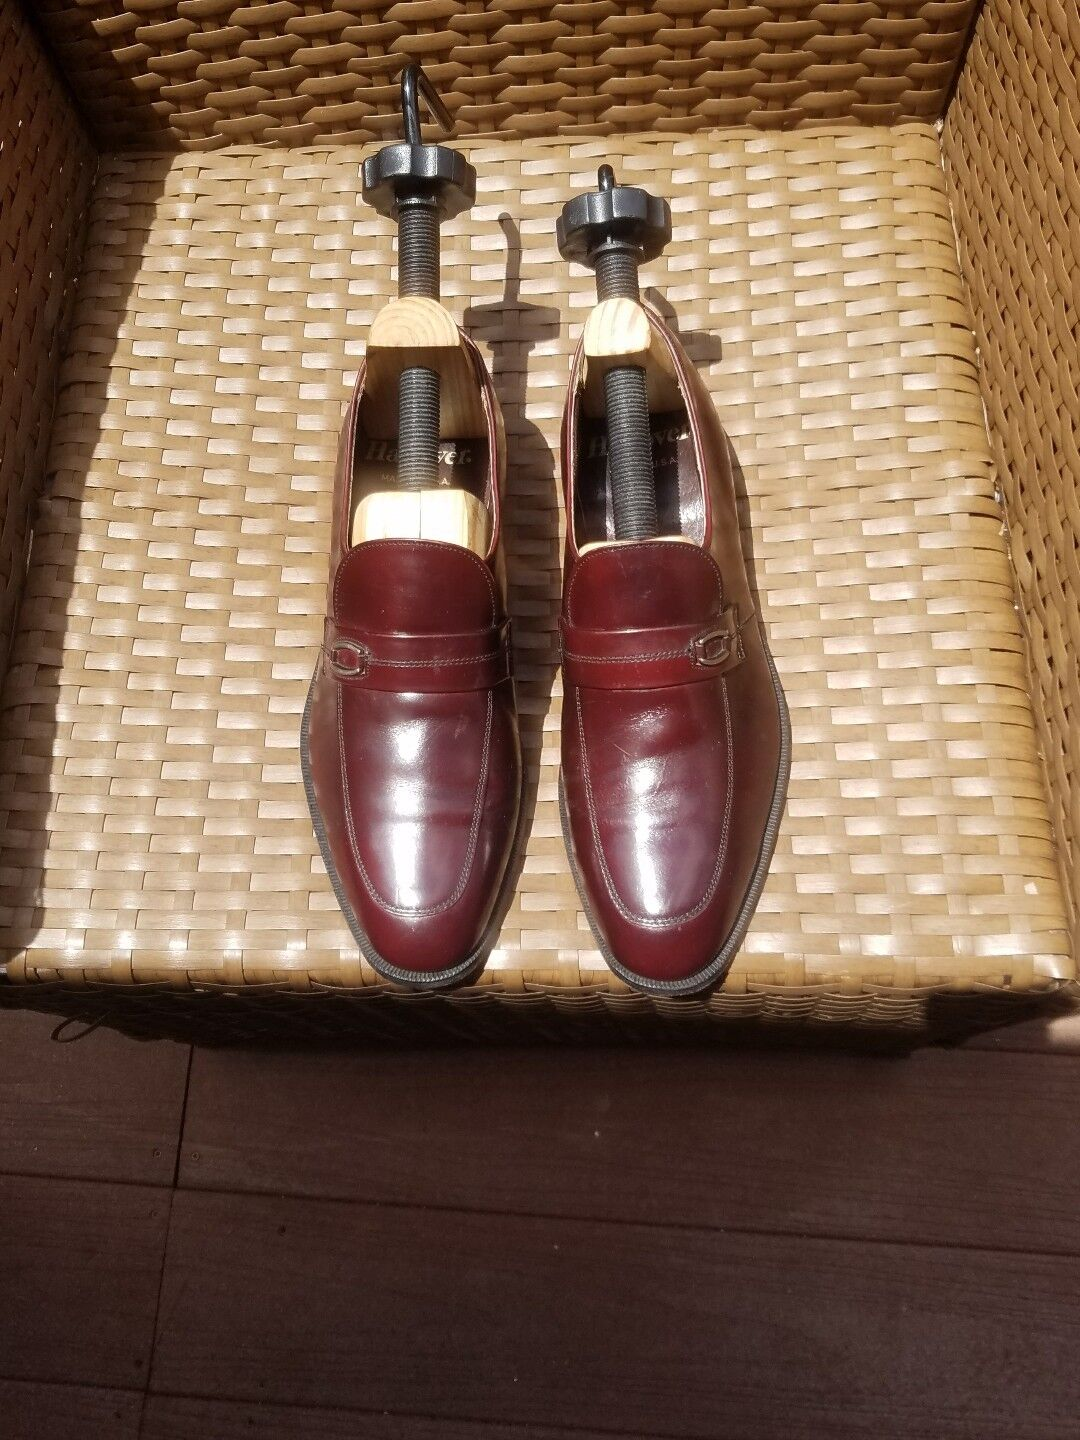 Man/Woman Mens Hanover shoes Size 9.5D/B Many varieties when Upper material Don't worry when varieties shopping 4950ba